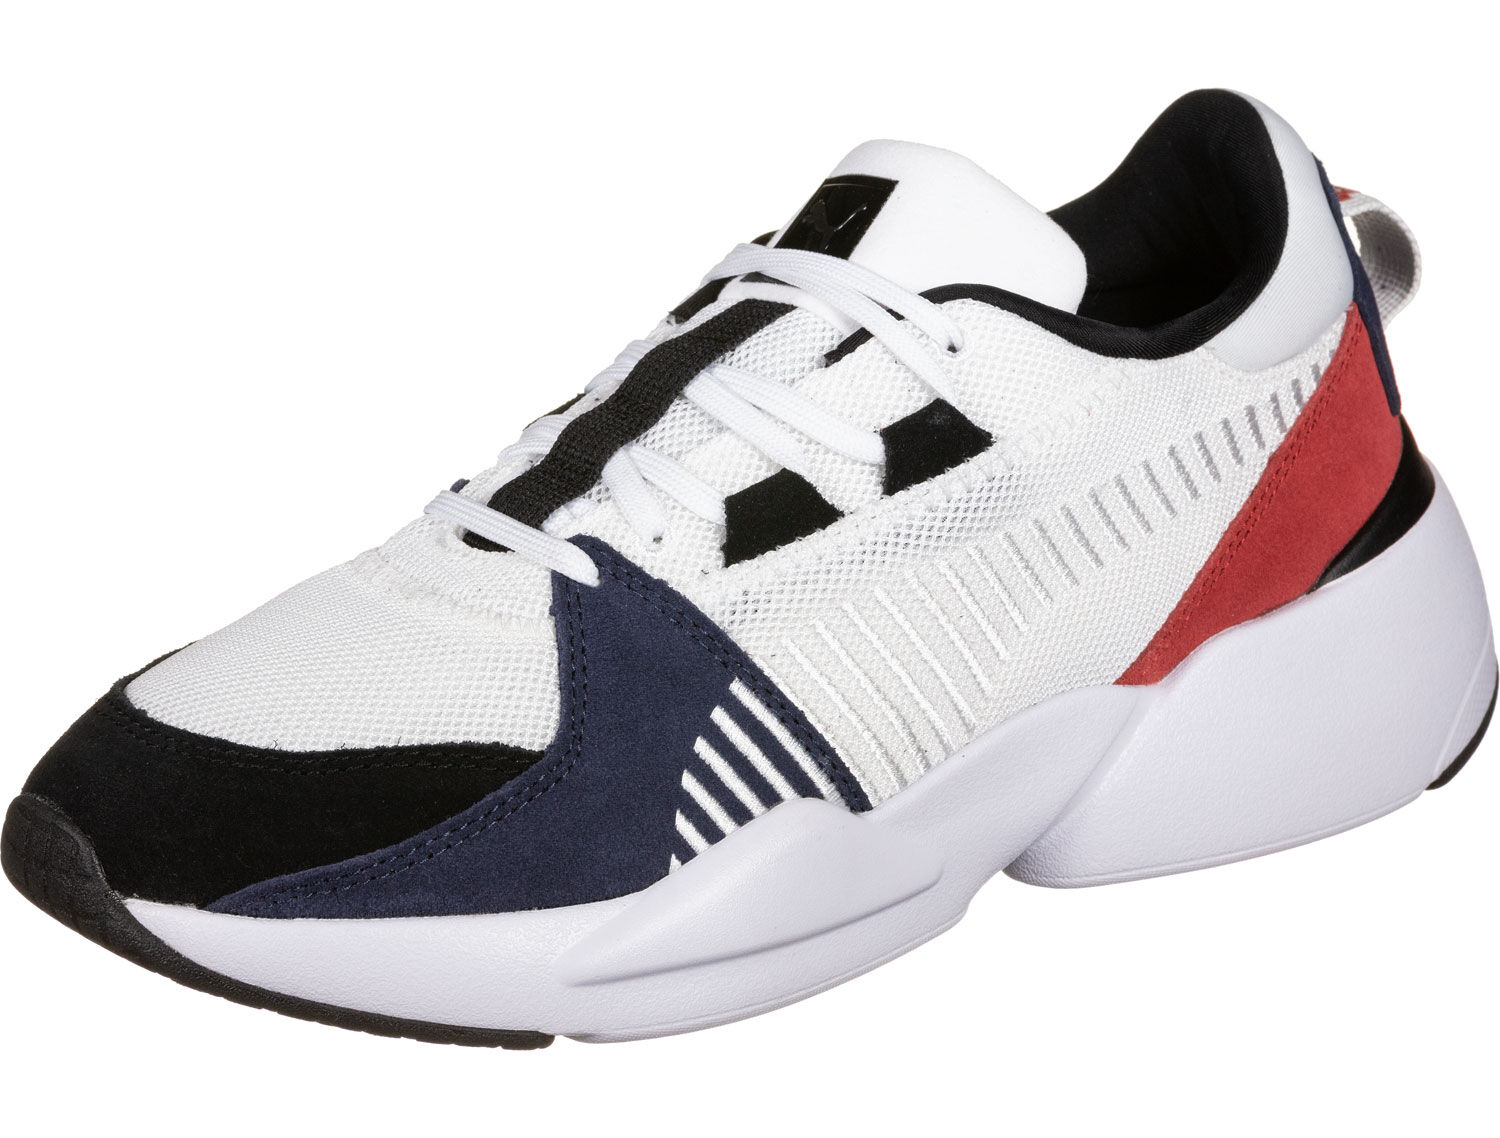 Puma Zeta Suede - Sneakers Low at Stylefile